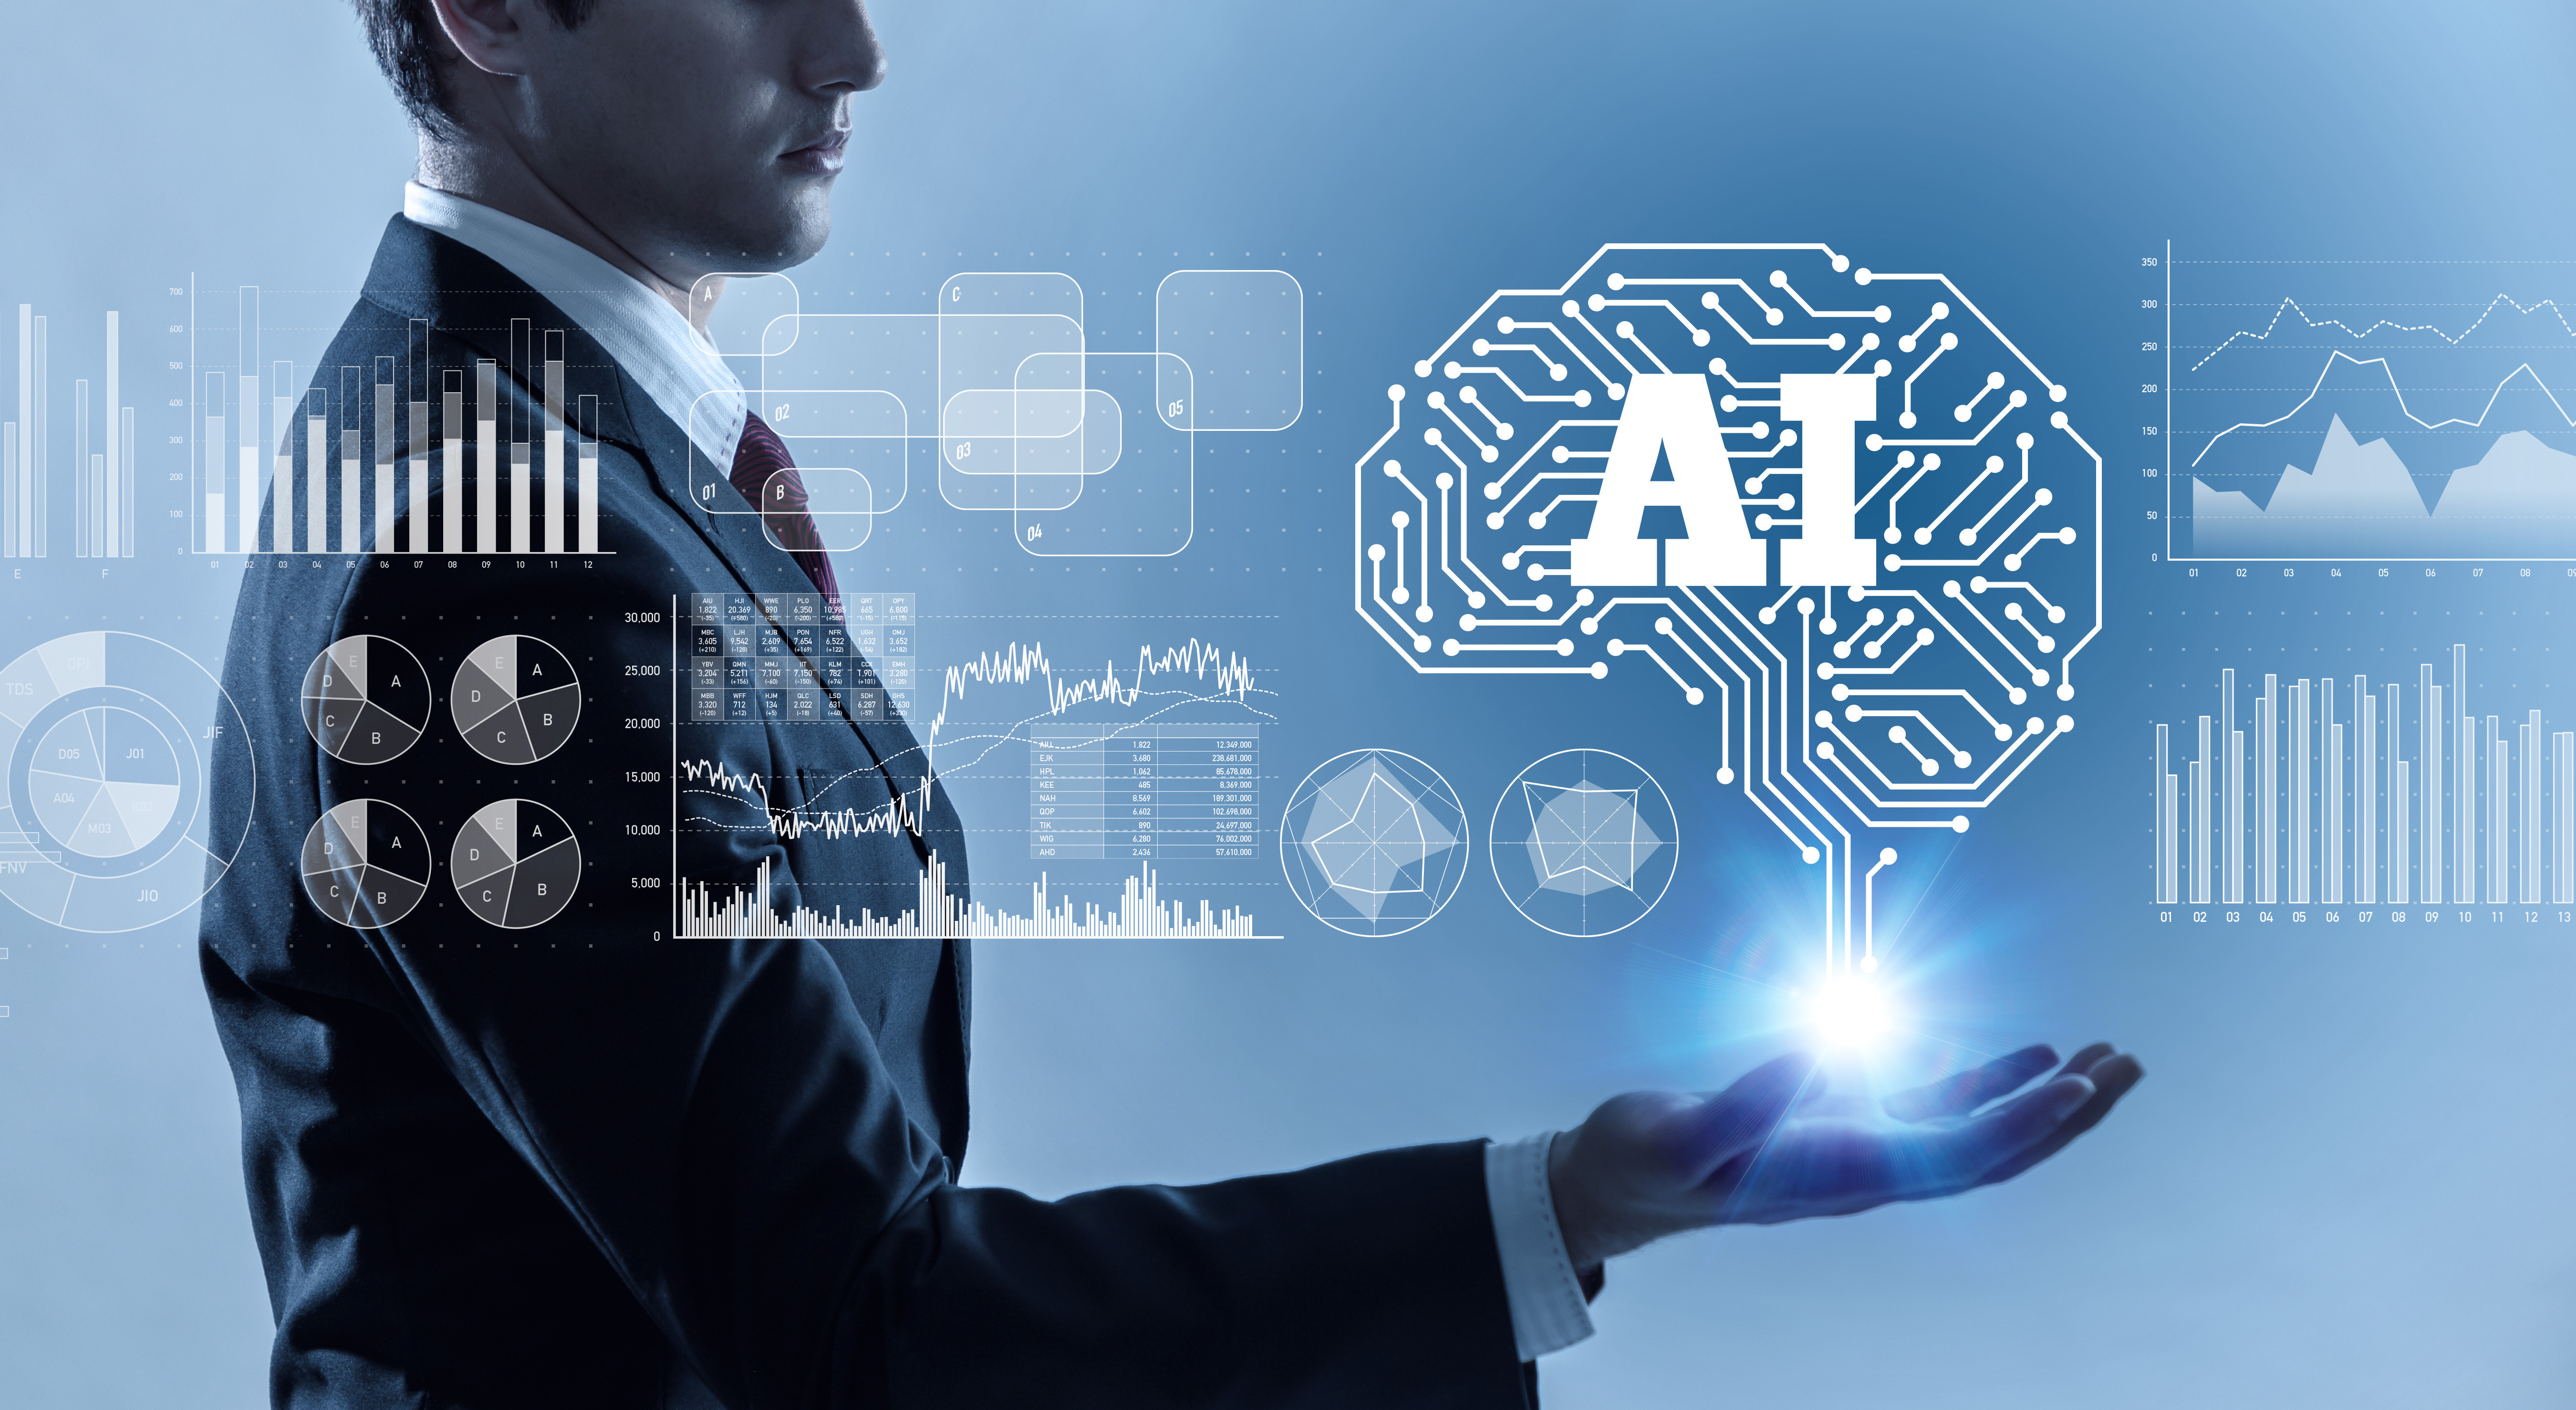 """""""Deploying AI at scale will be problematic until companies engage in fundamental change to become 'Responsible AI'-driven organizations'"""